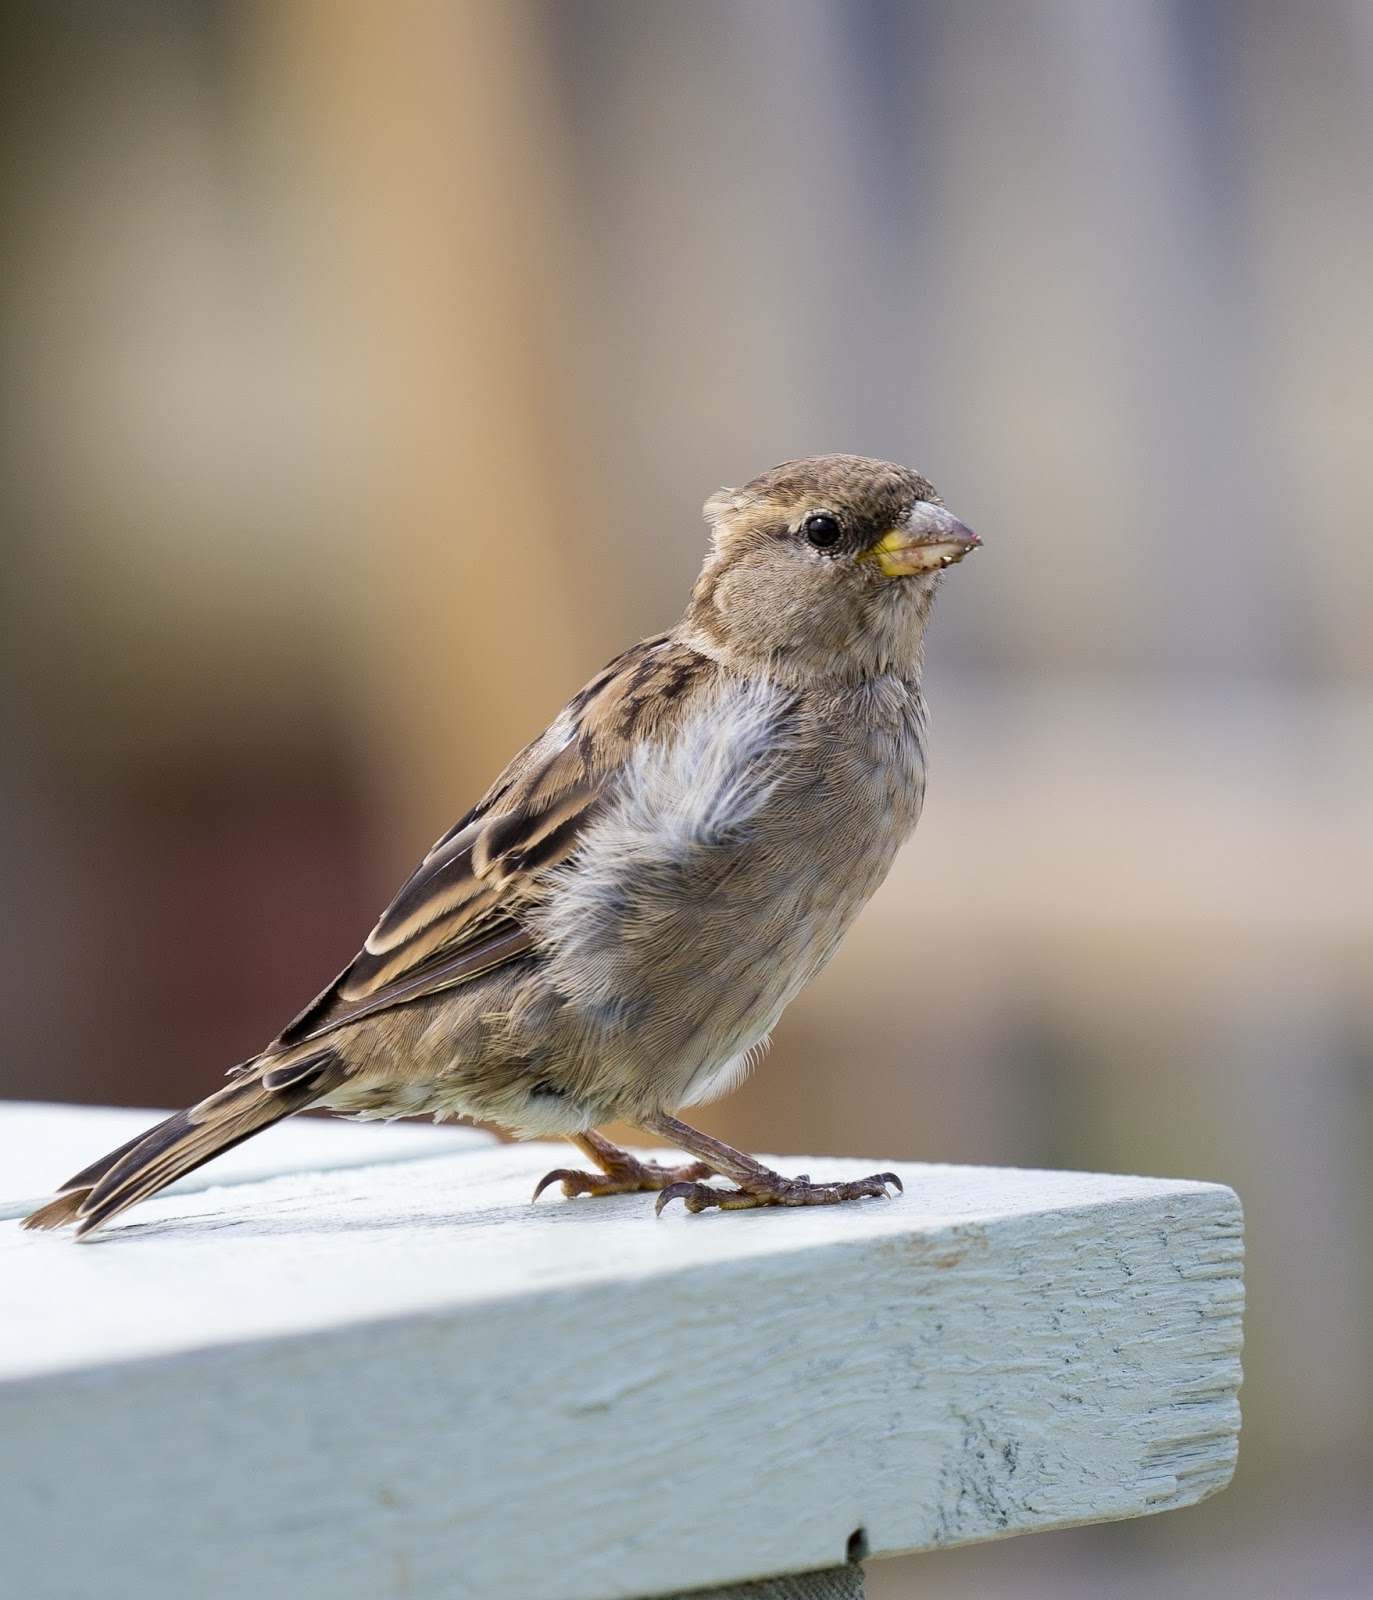 Picture of a sparrow on a wooden plank.